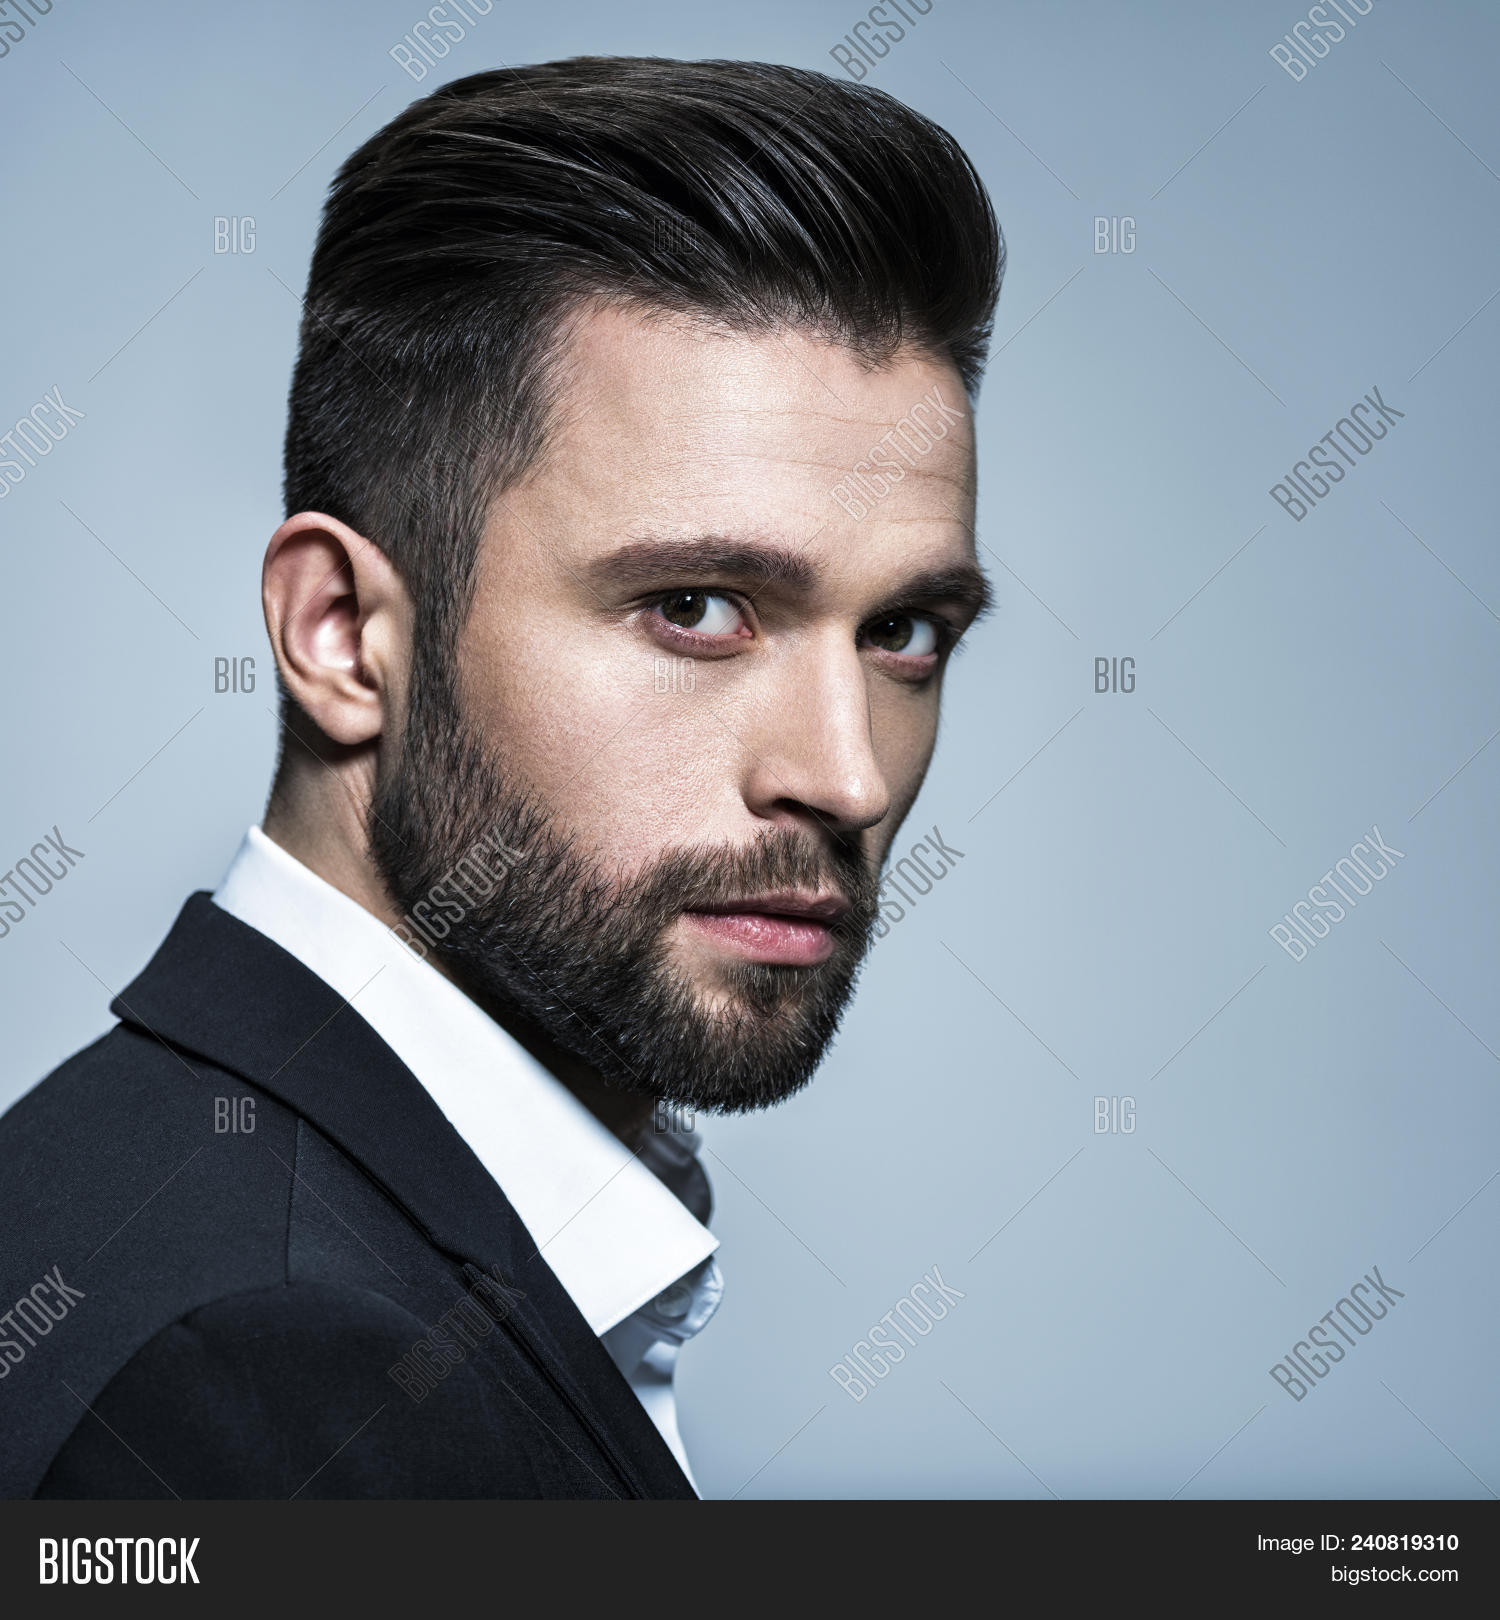 Handsome Hairstyles For Men: Handsome Man Black Image & Photo (Free Trial)